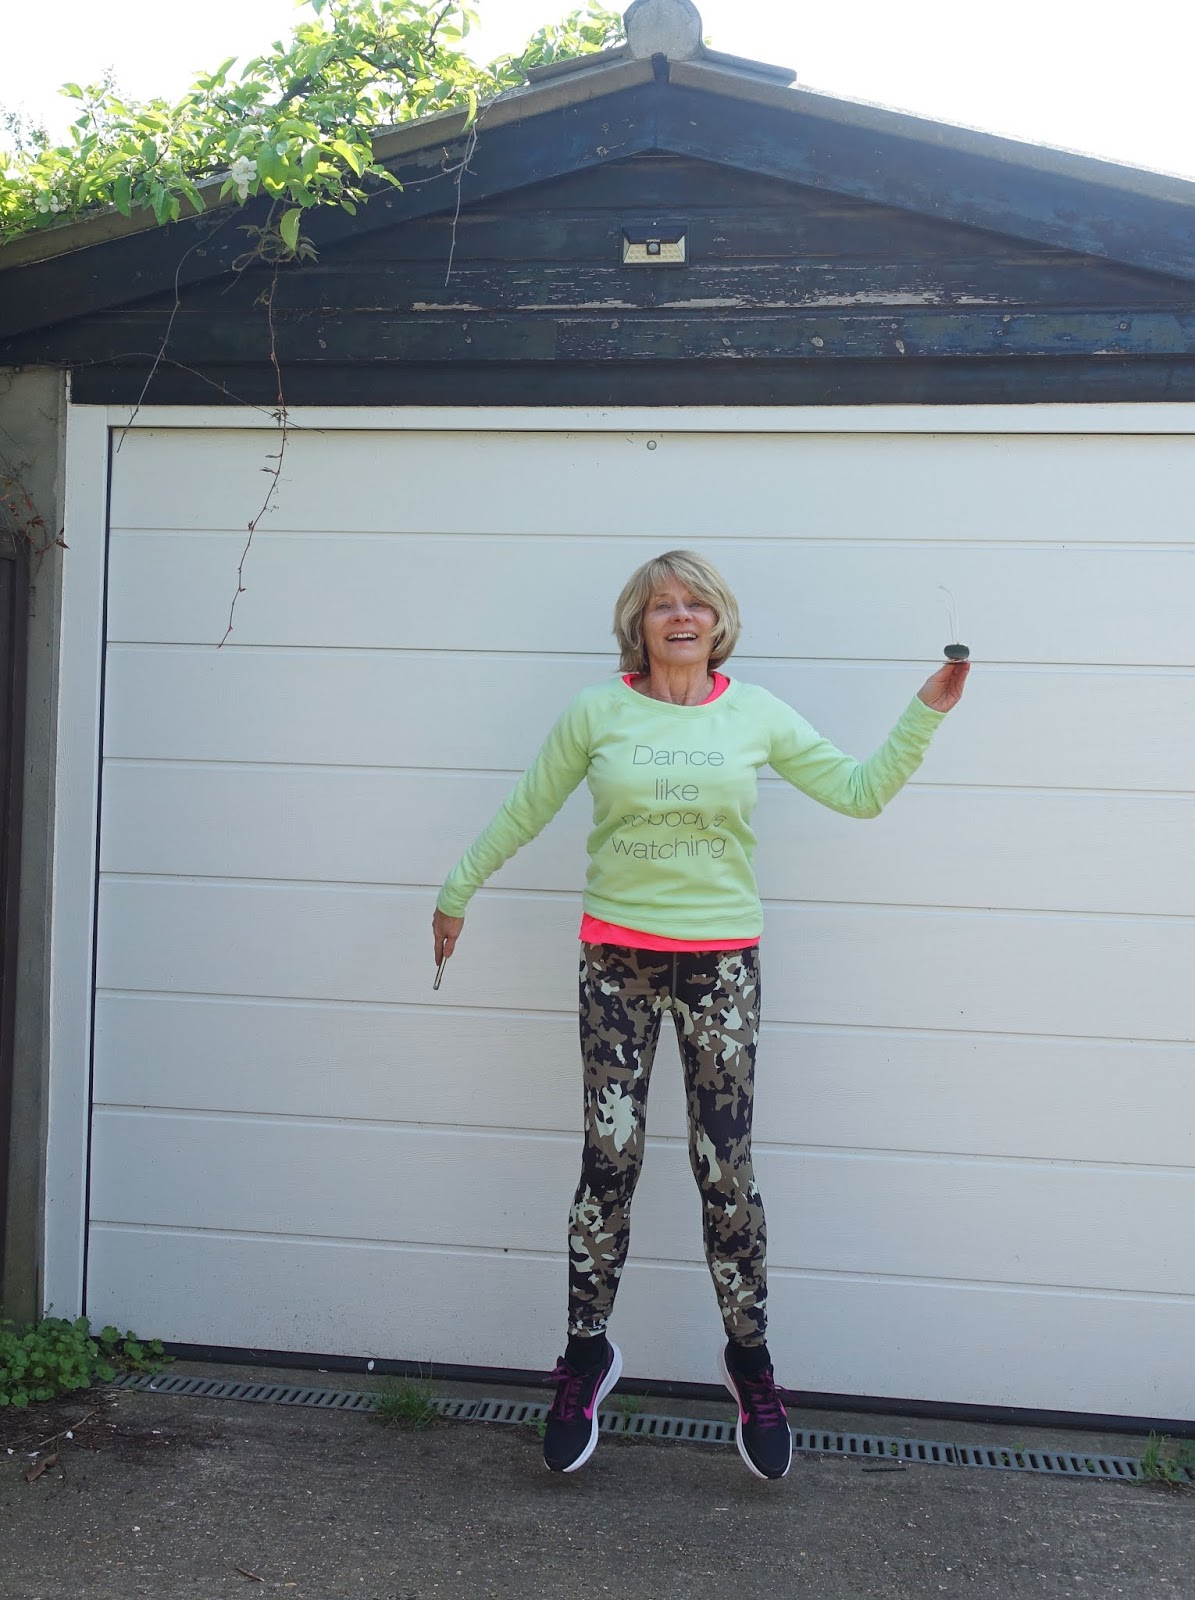 Jumping for joy - Is This Mutton style blogger Gail Hanlon in leggings and sweatshirt from Yoga Leggs